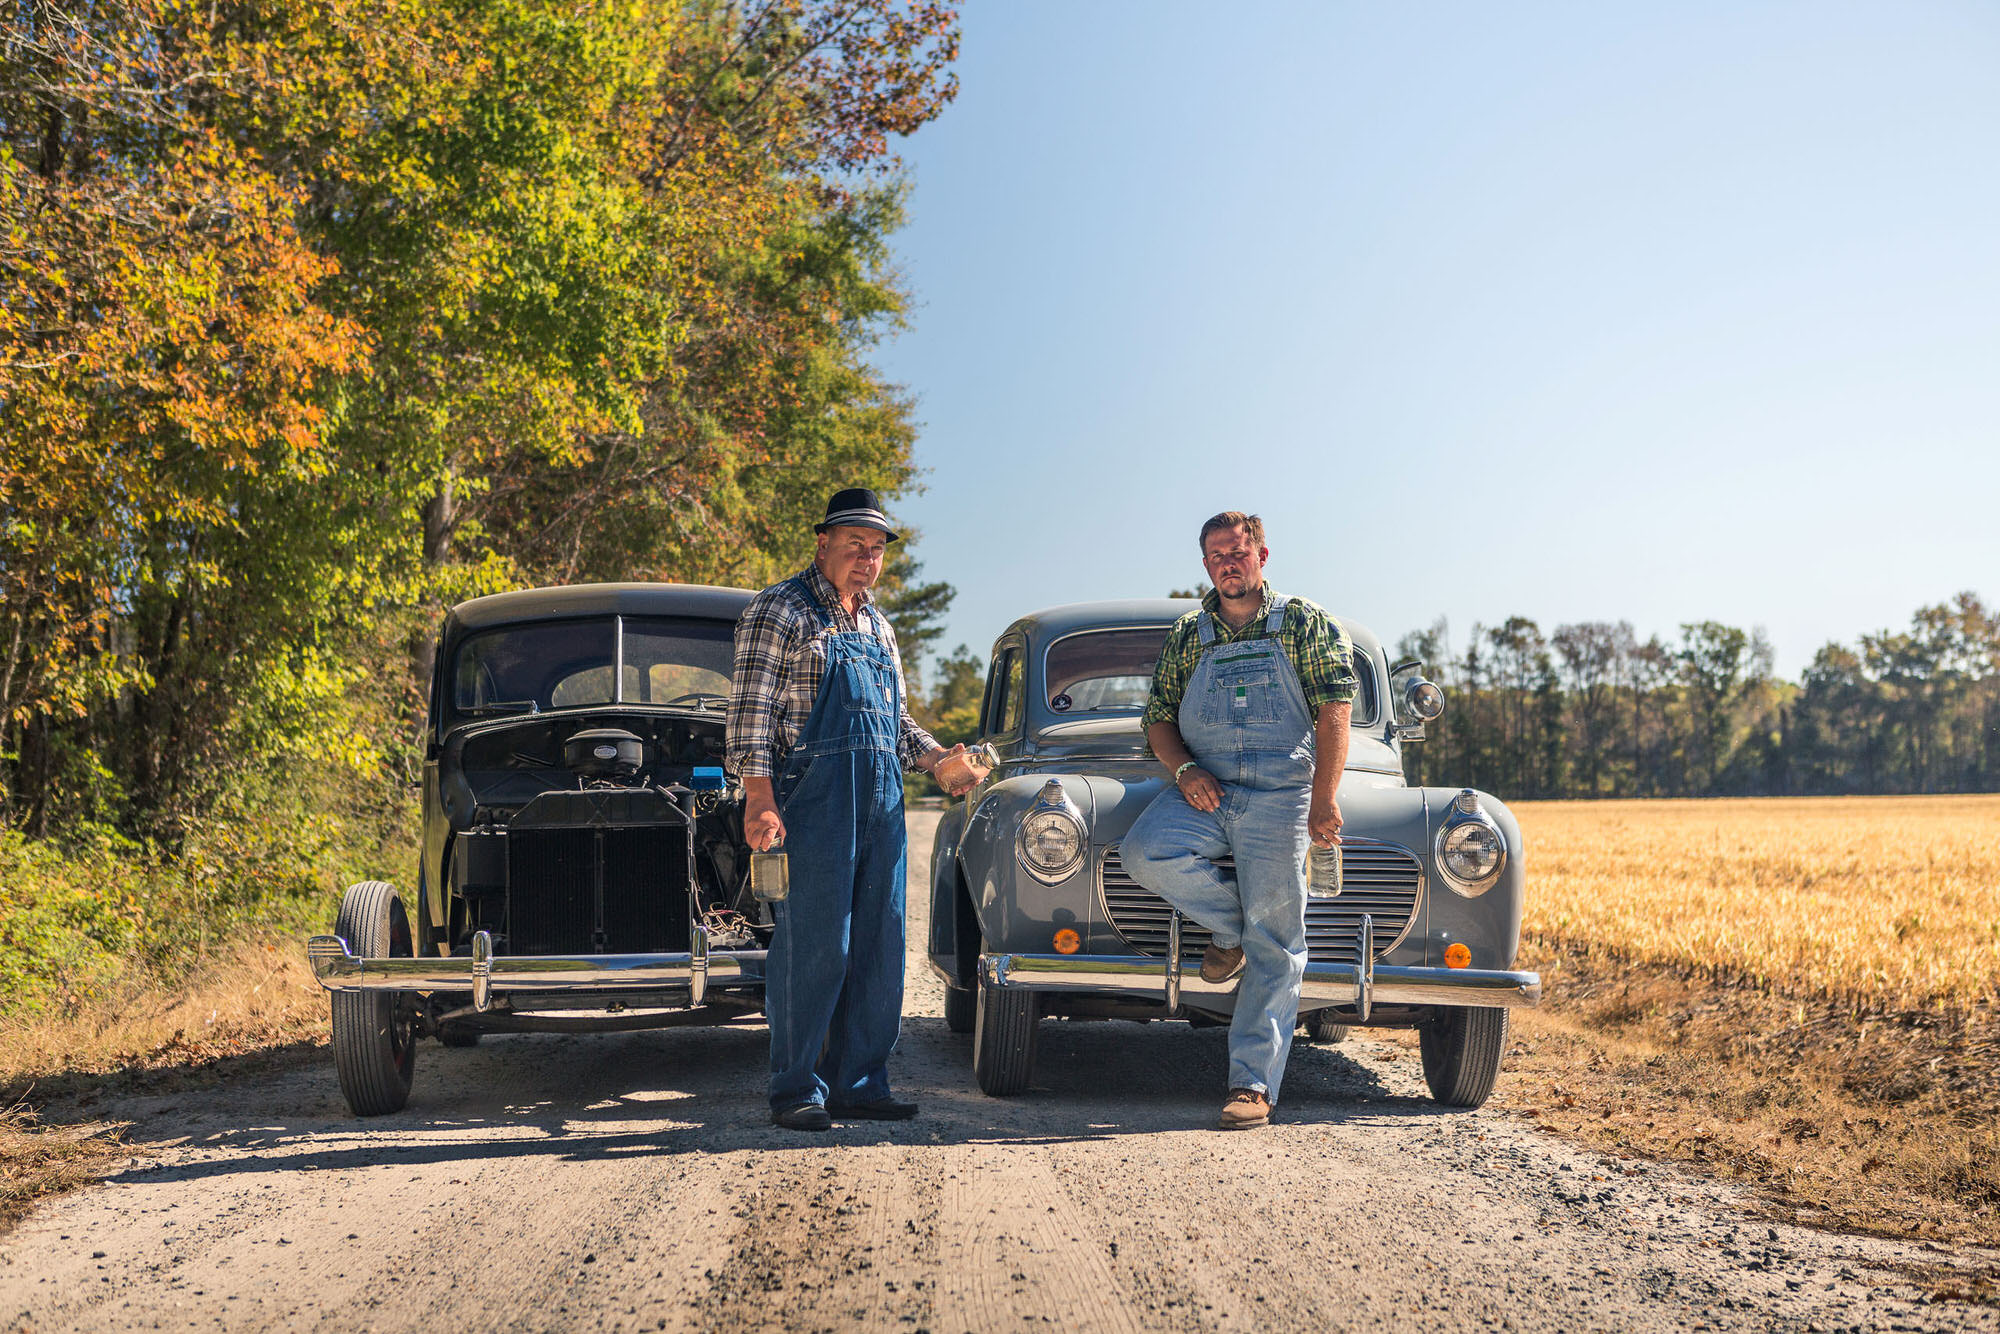 Classic Cars Whiskey Moonshine run through the South, shot for Car and Driver Magazine